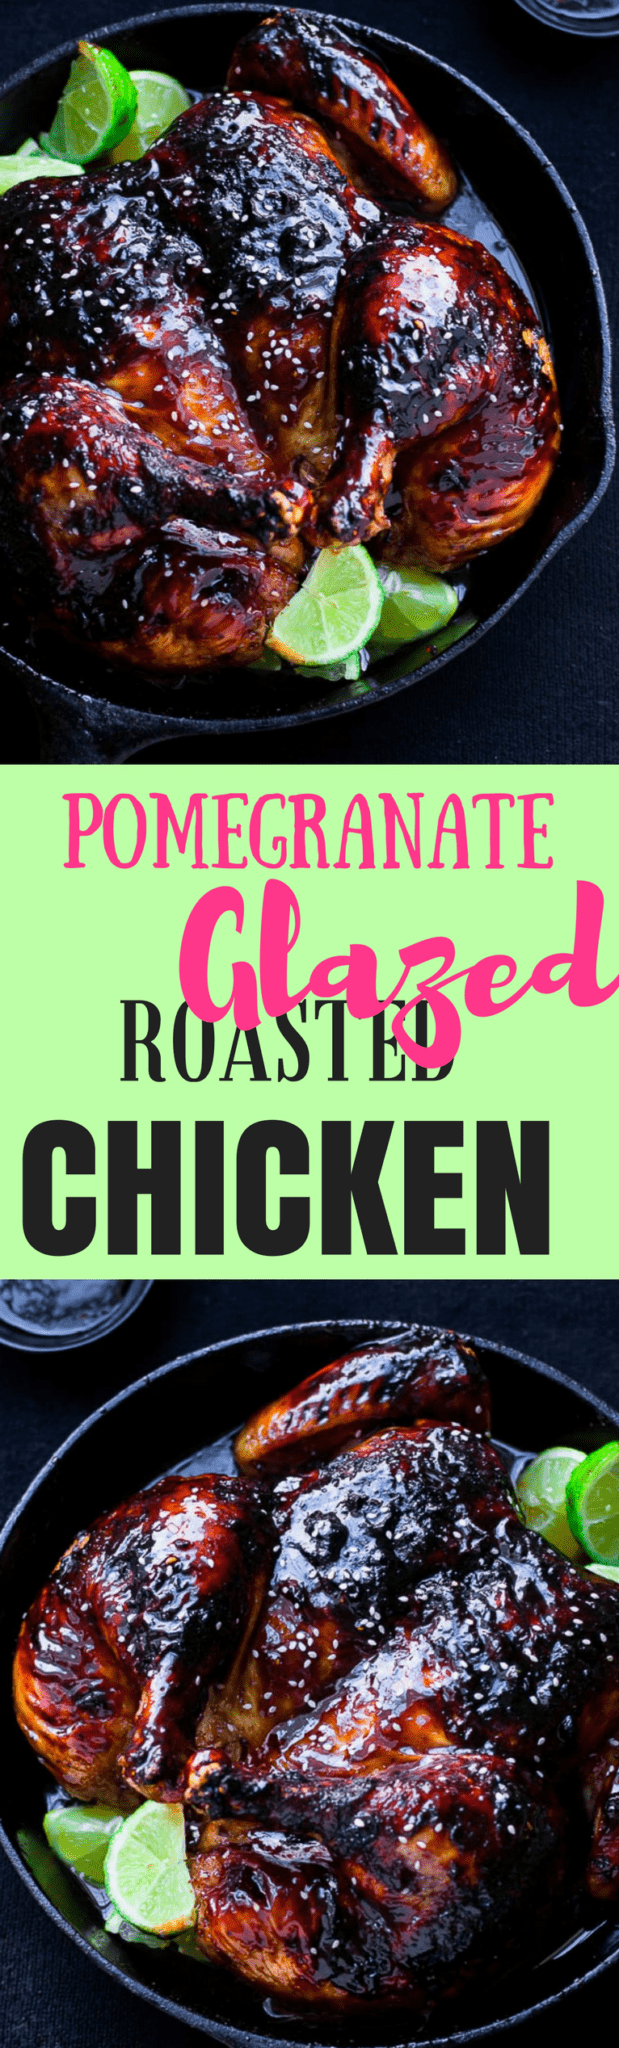 Pull dinner together in a jiffy with this delicious and super easy to prepare pomegranate chicken recipe. It tastes just as good as it looks!